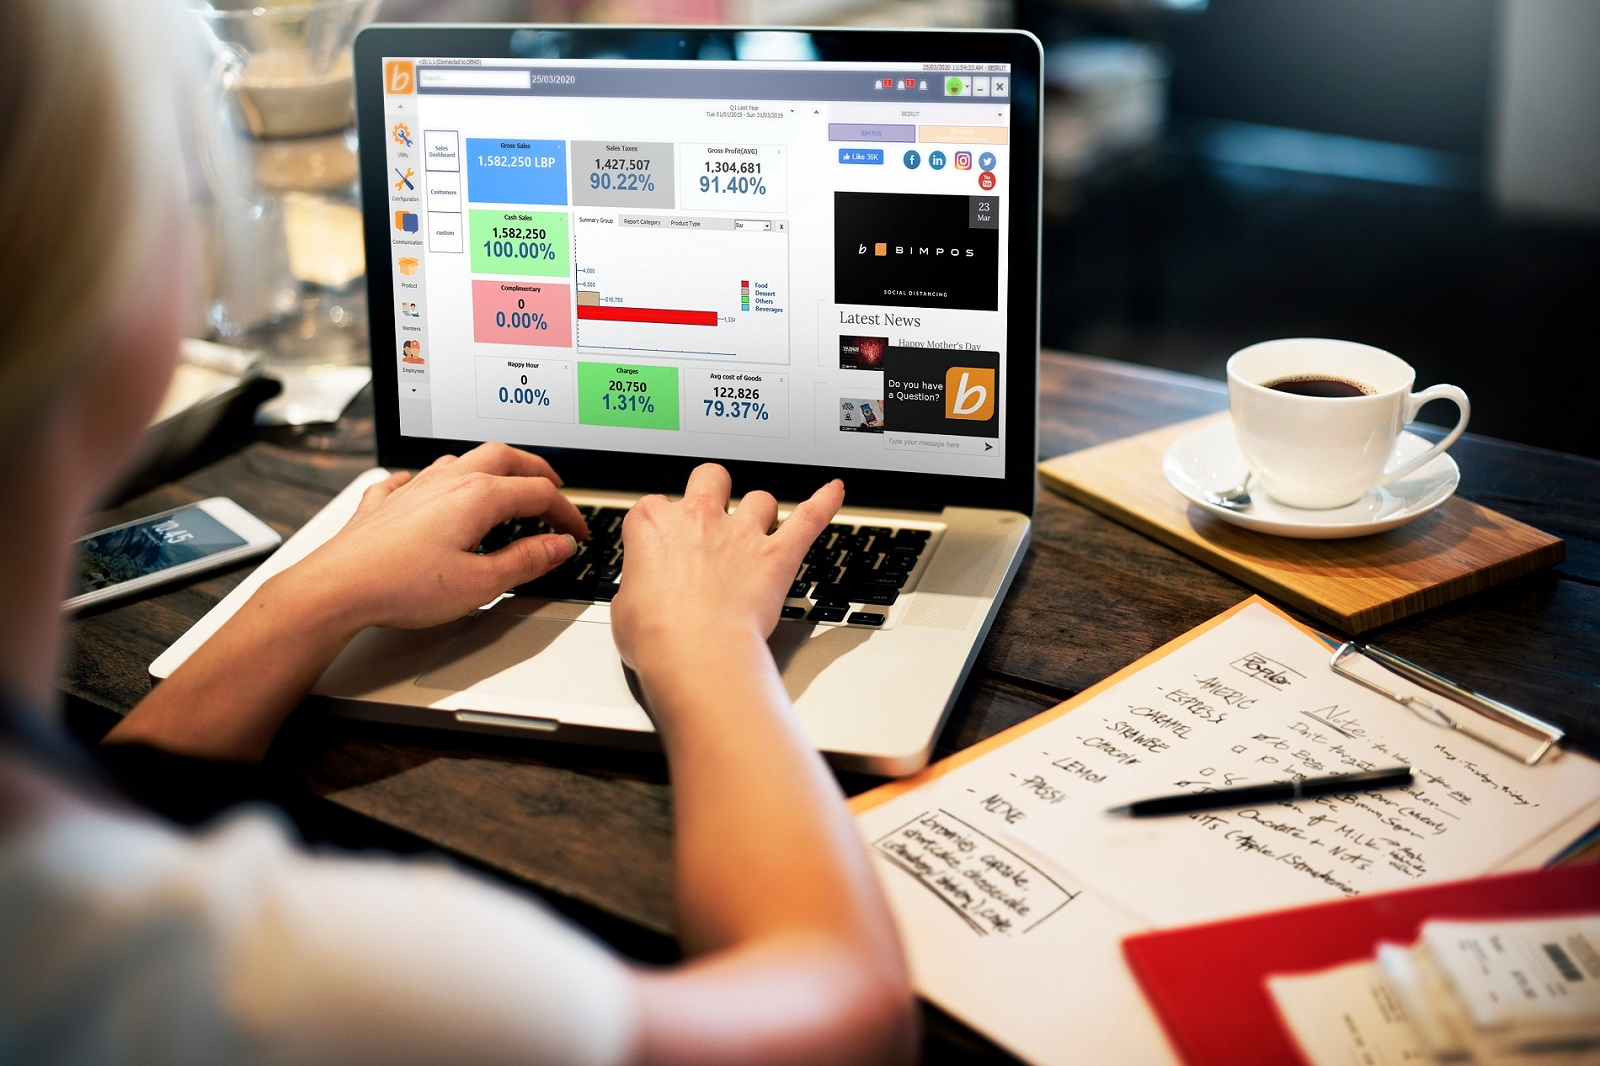 An employee working on the restaurant management system and managing inventory and CRM